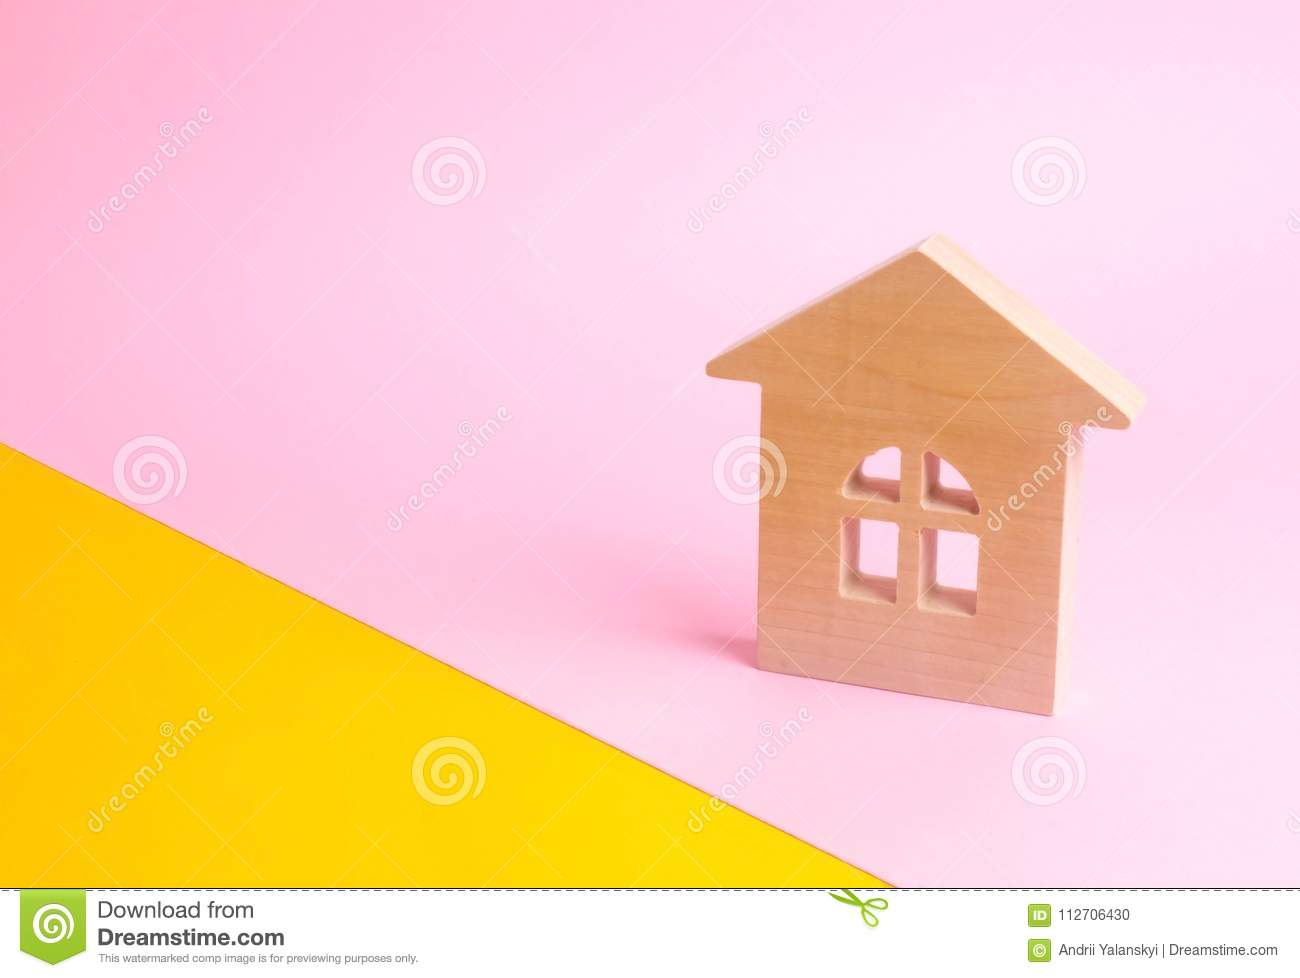 A Wooden House On A Pink Background In Pop Style. The Concept Of ...